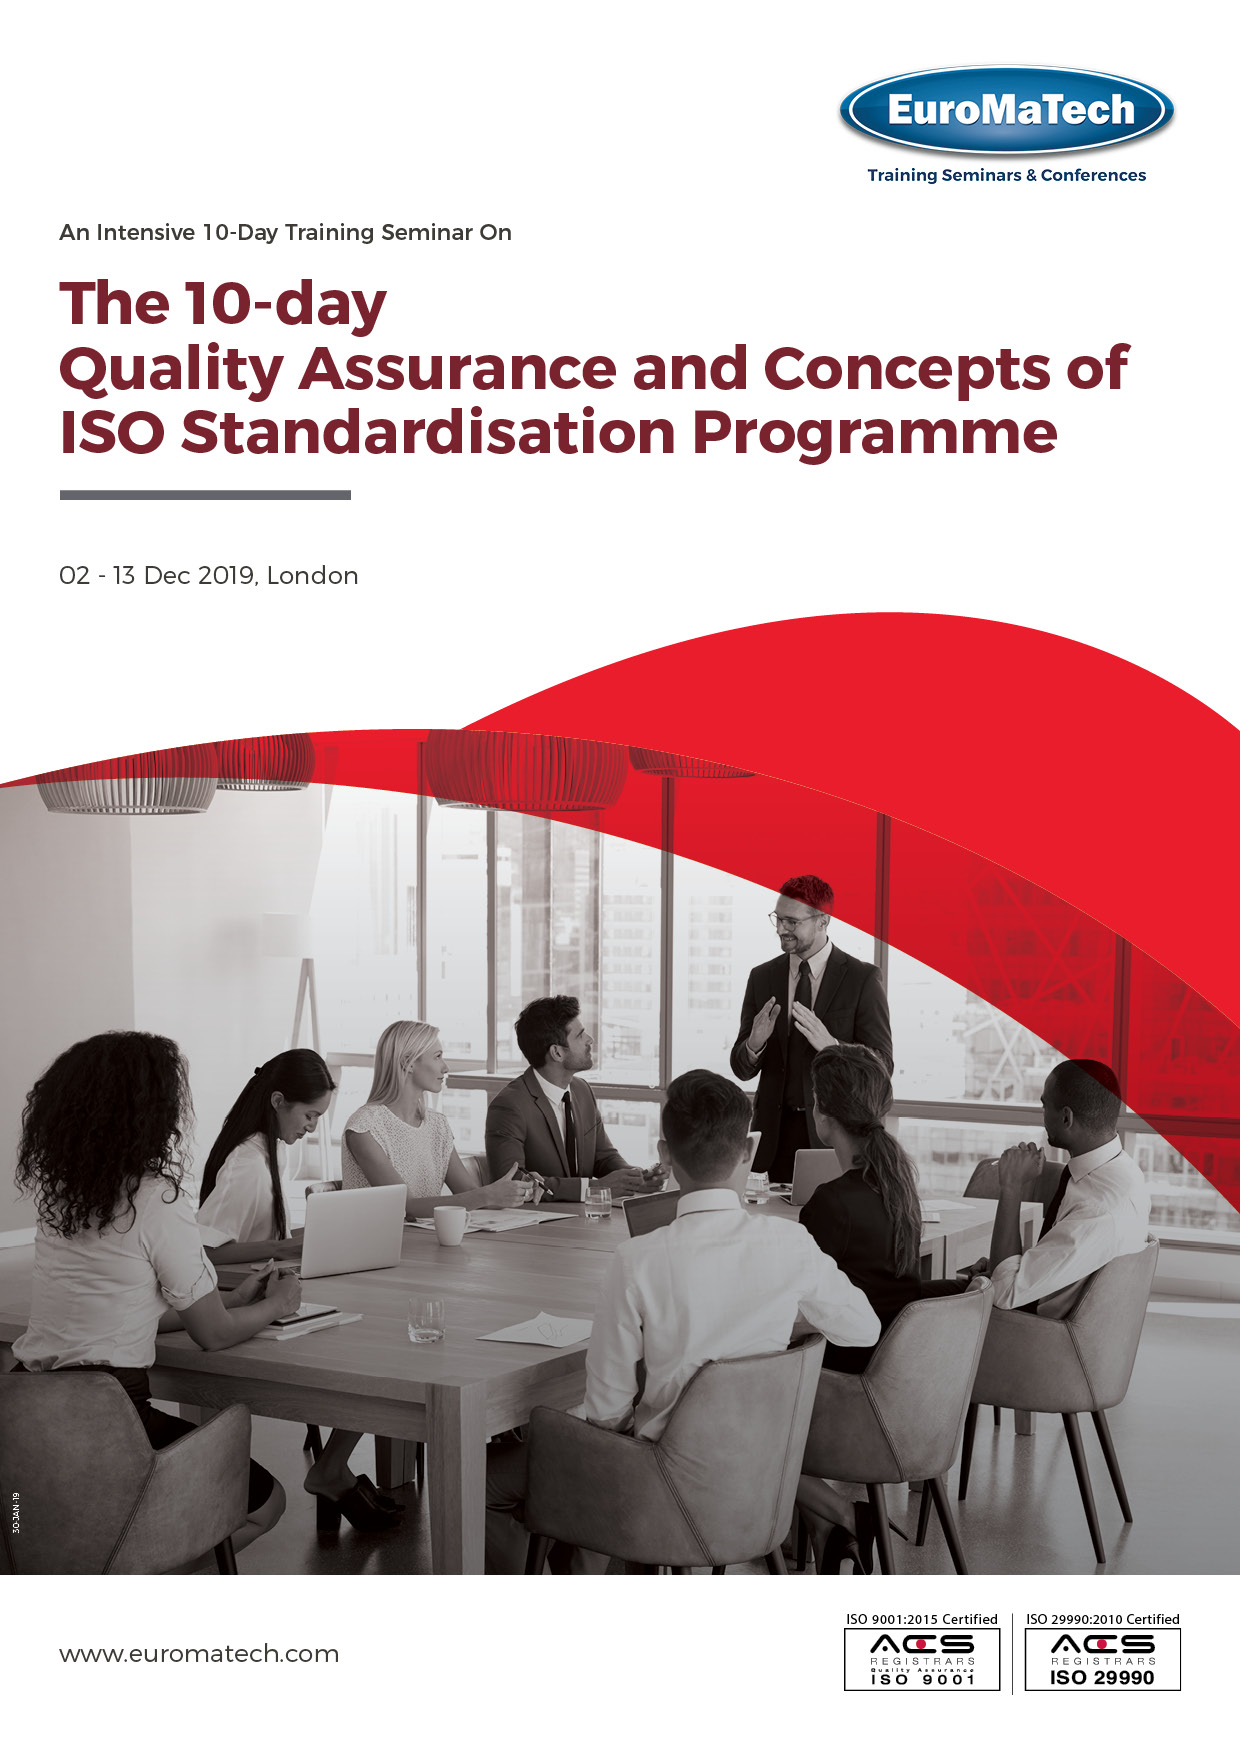 thumbnail of MG336The 10-day Quality Assurance and Concepts of ISO Standardisation Programme